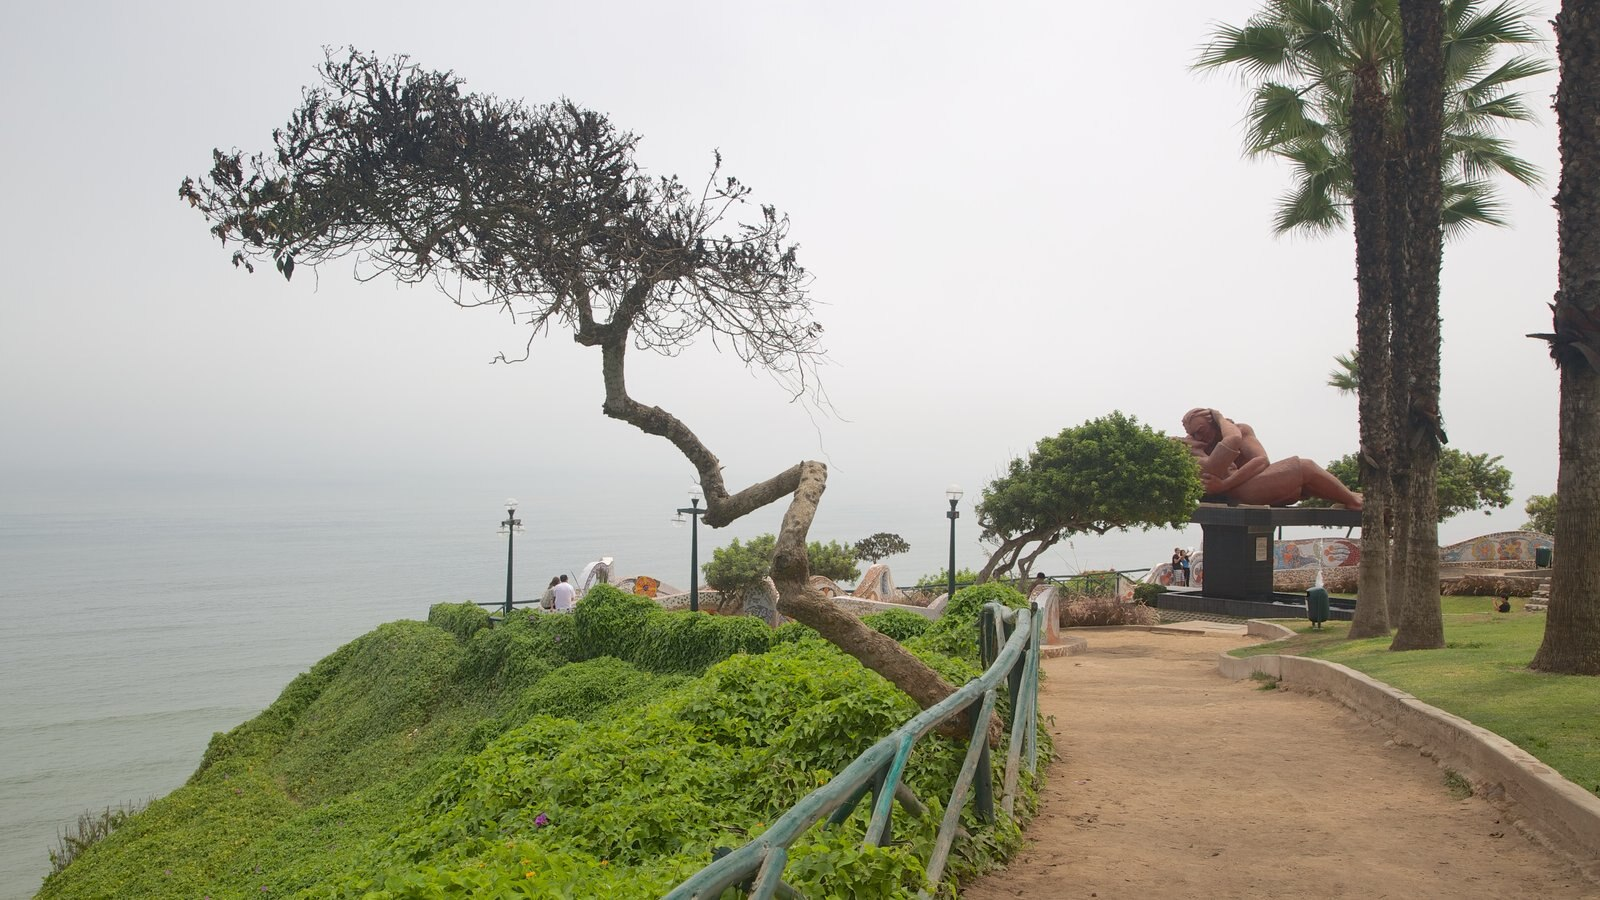 Lima which includes general coastal views and a garden